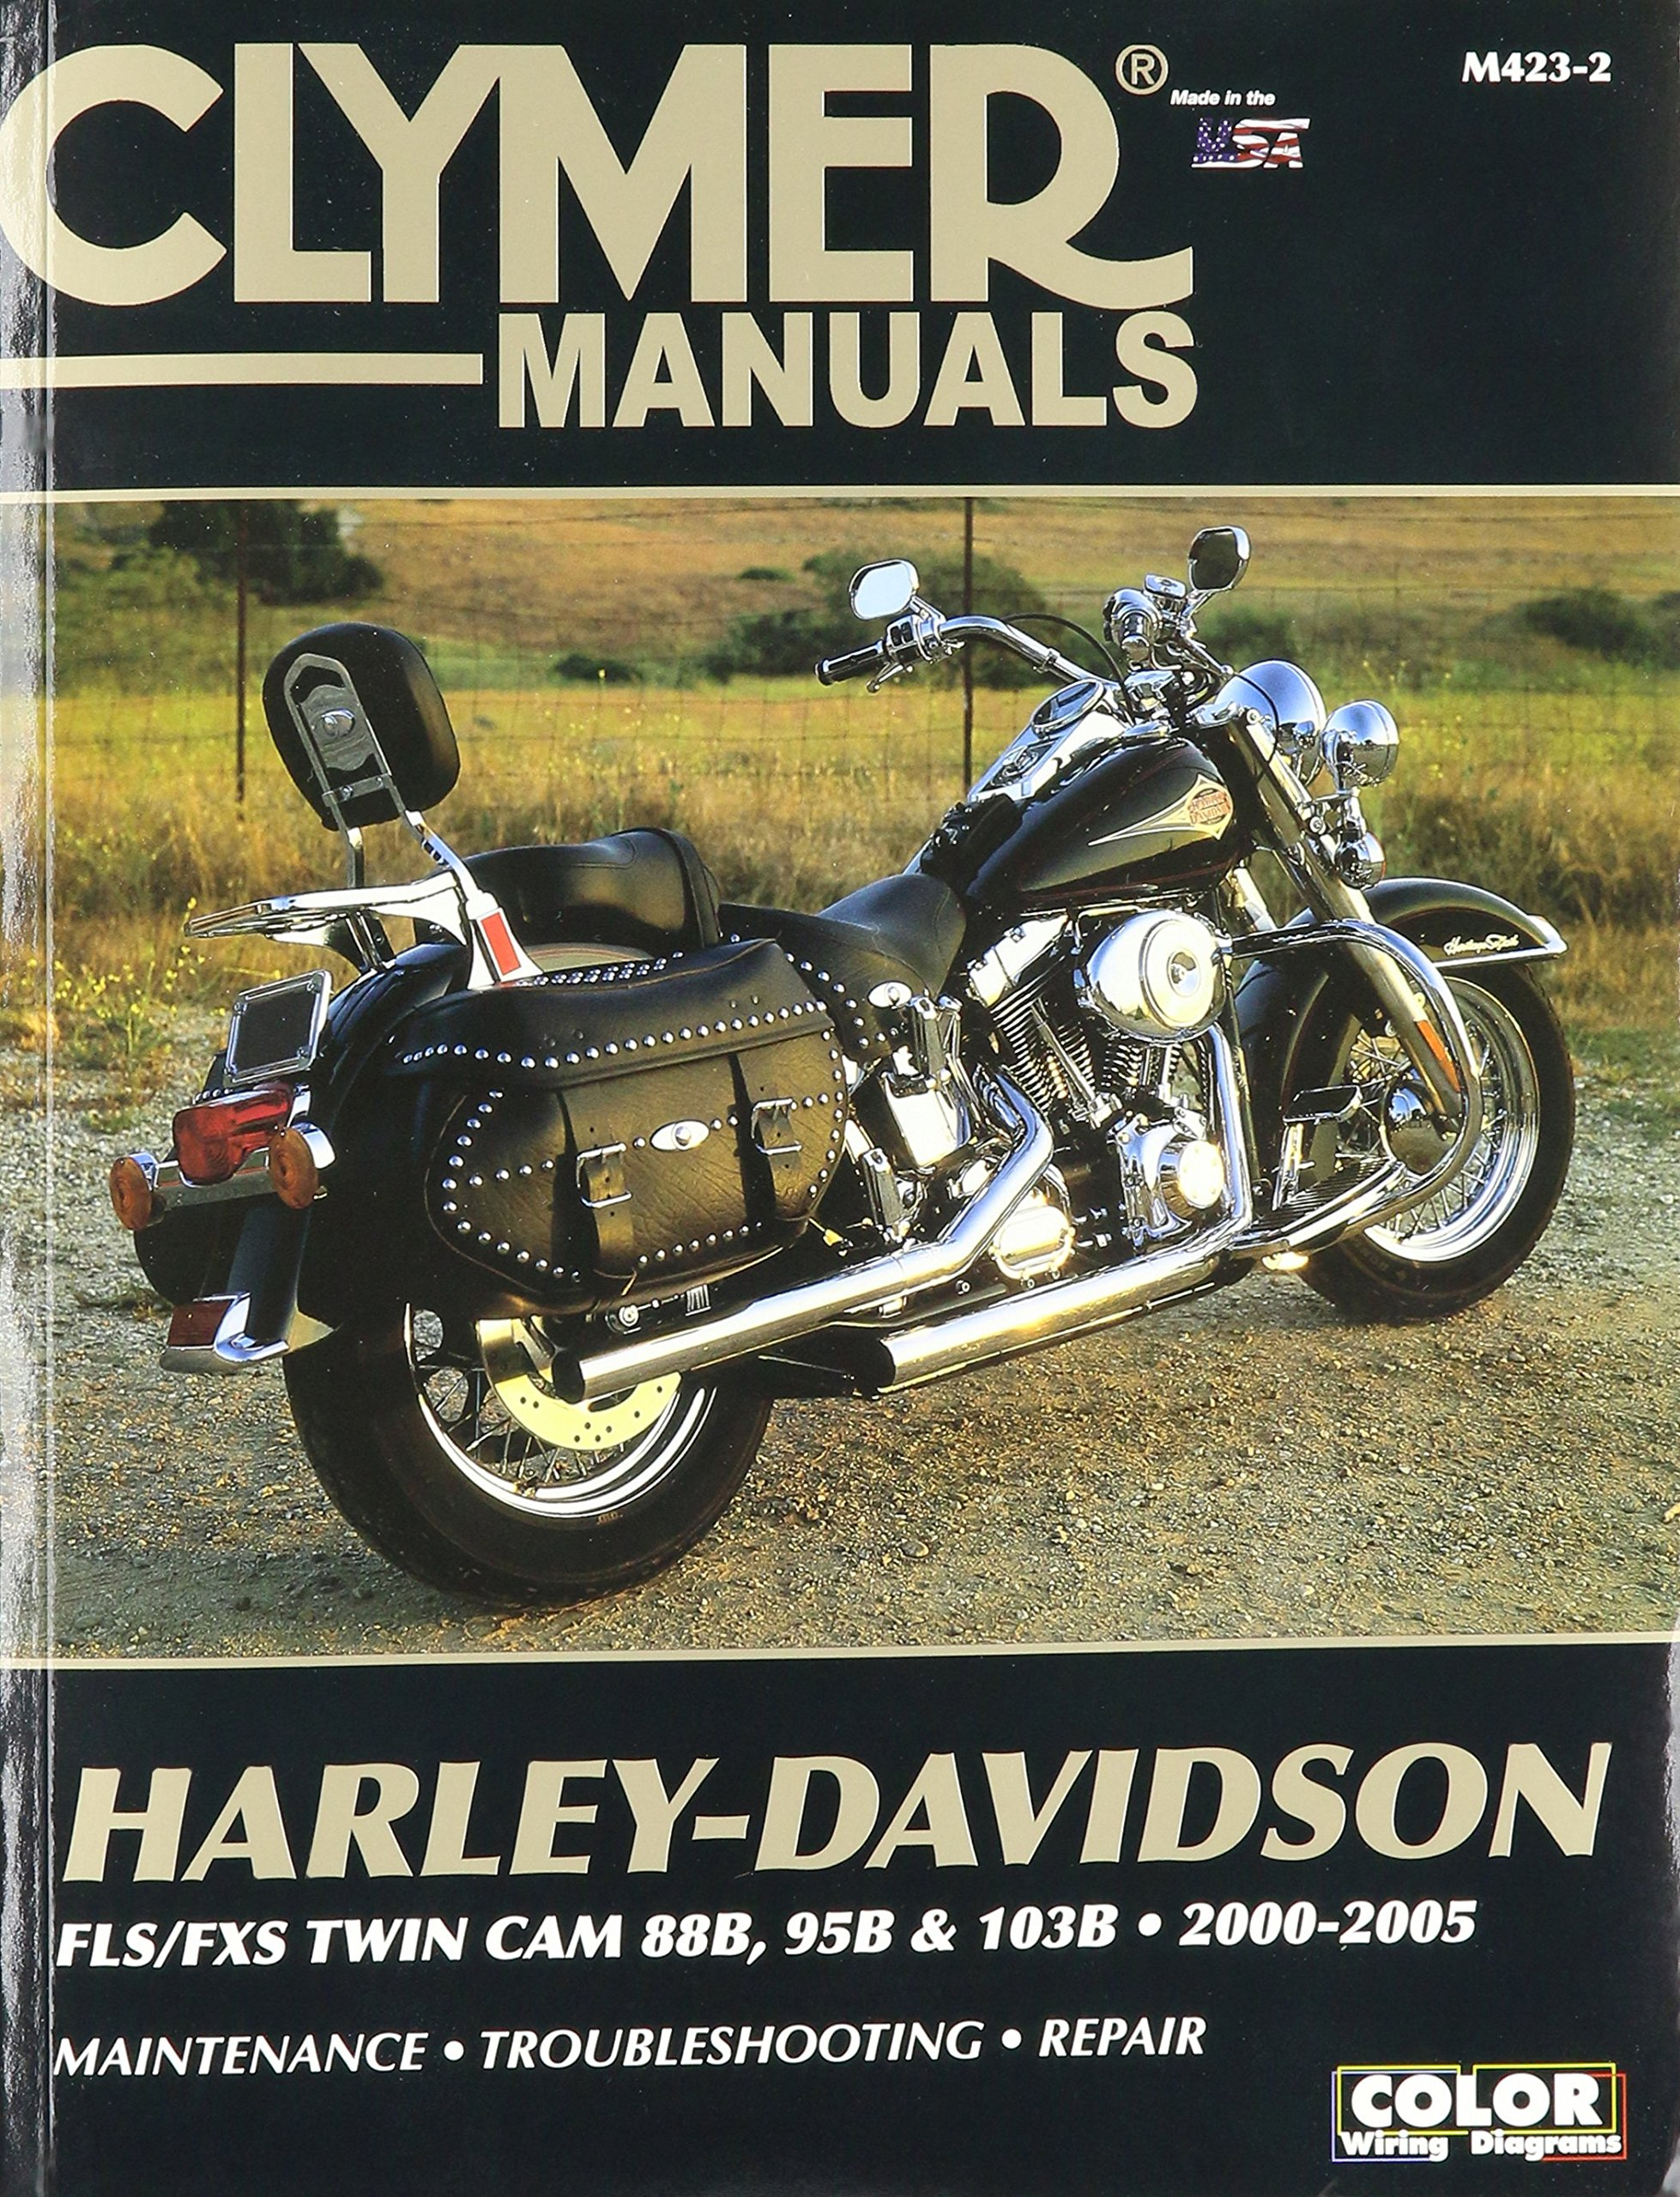 1986 Harley Heritage Softail Wiring Diagram Cheap Best Find Deals On Line At Get Quotations Clymer Repair Manual For Twin Cam 88 00 05